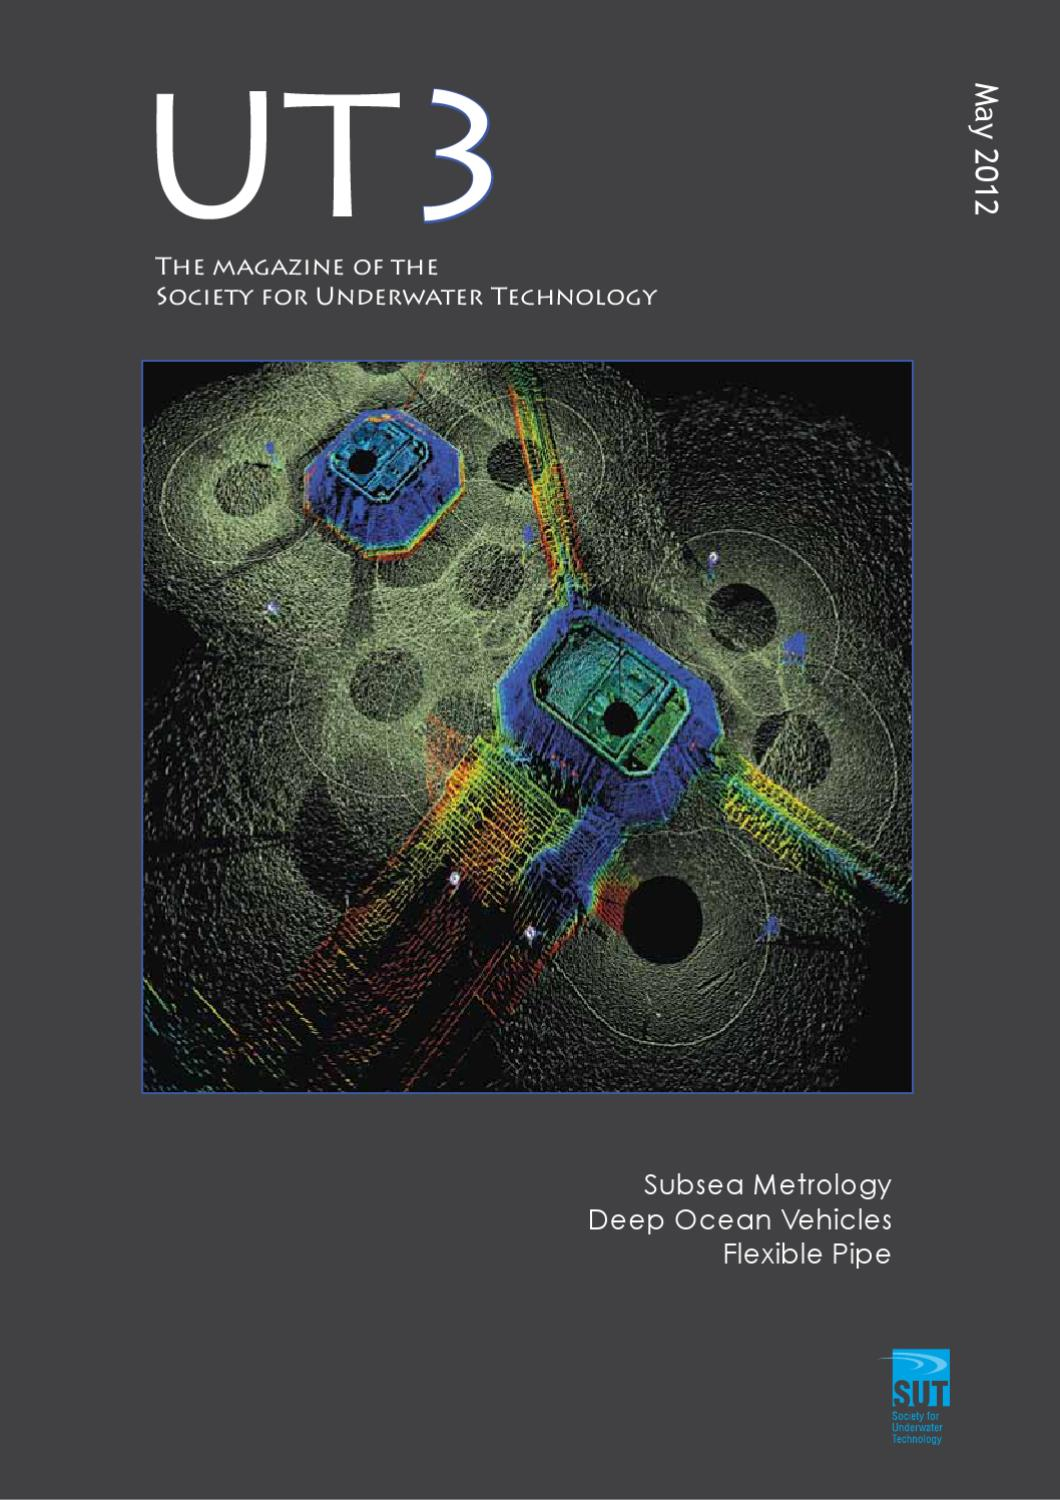 Ut3 Issue 2 May 2012 By Ut 2com Issuu Peninsula Counters Wiring Code Furthermore Pulse Converter Circuit